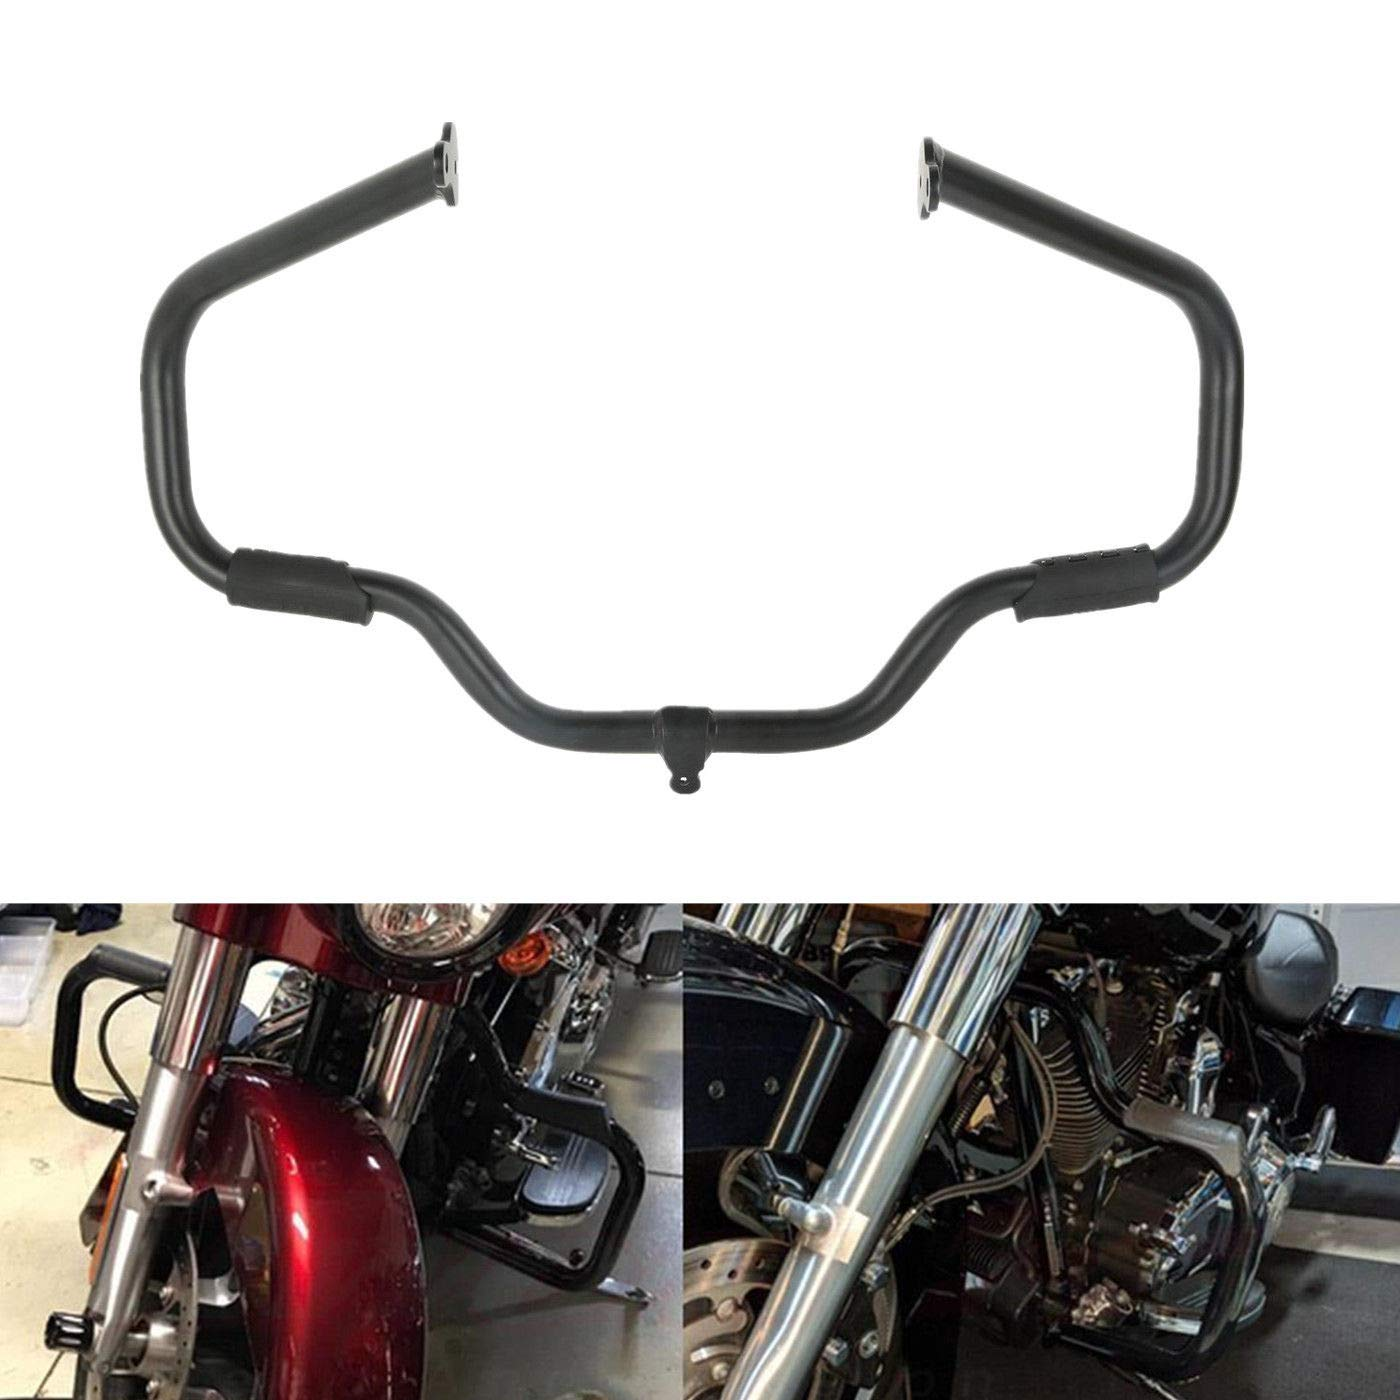 TCMT Black Engine Mustache Crash Guard Bar Fits For Harley Touring Glide FLH FLT 2009 2010 2011 2012 2013 2014 2015 2016 2017 2018 2019